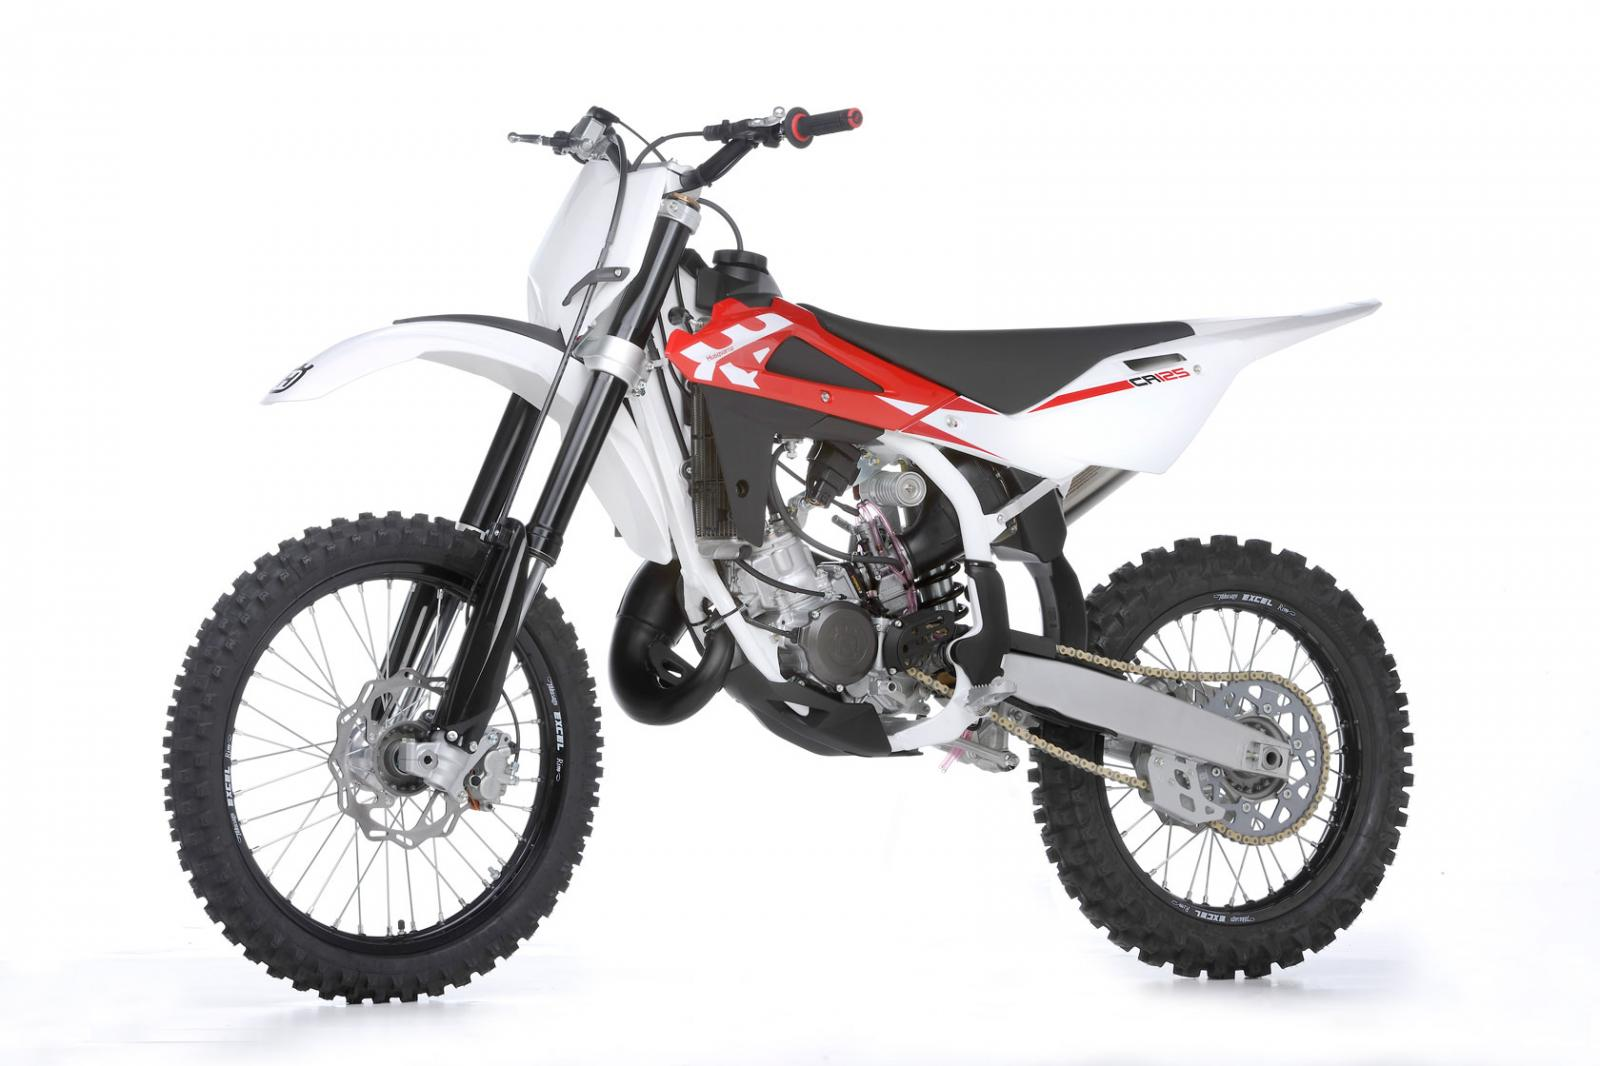 Husqvarna cr photo - 9